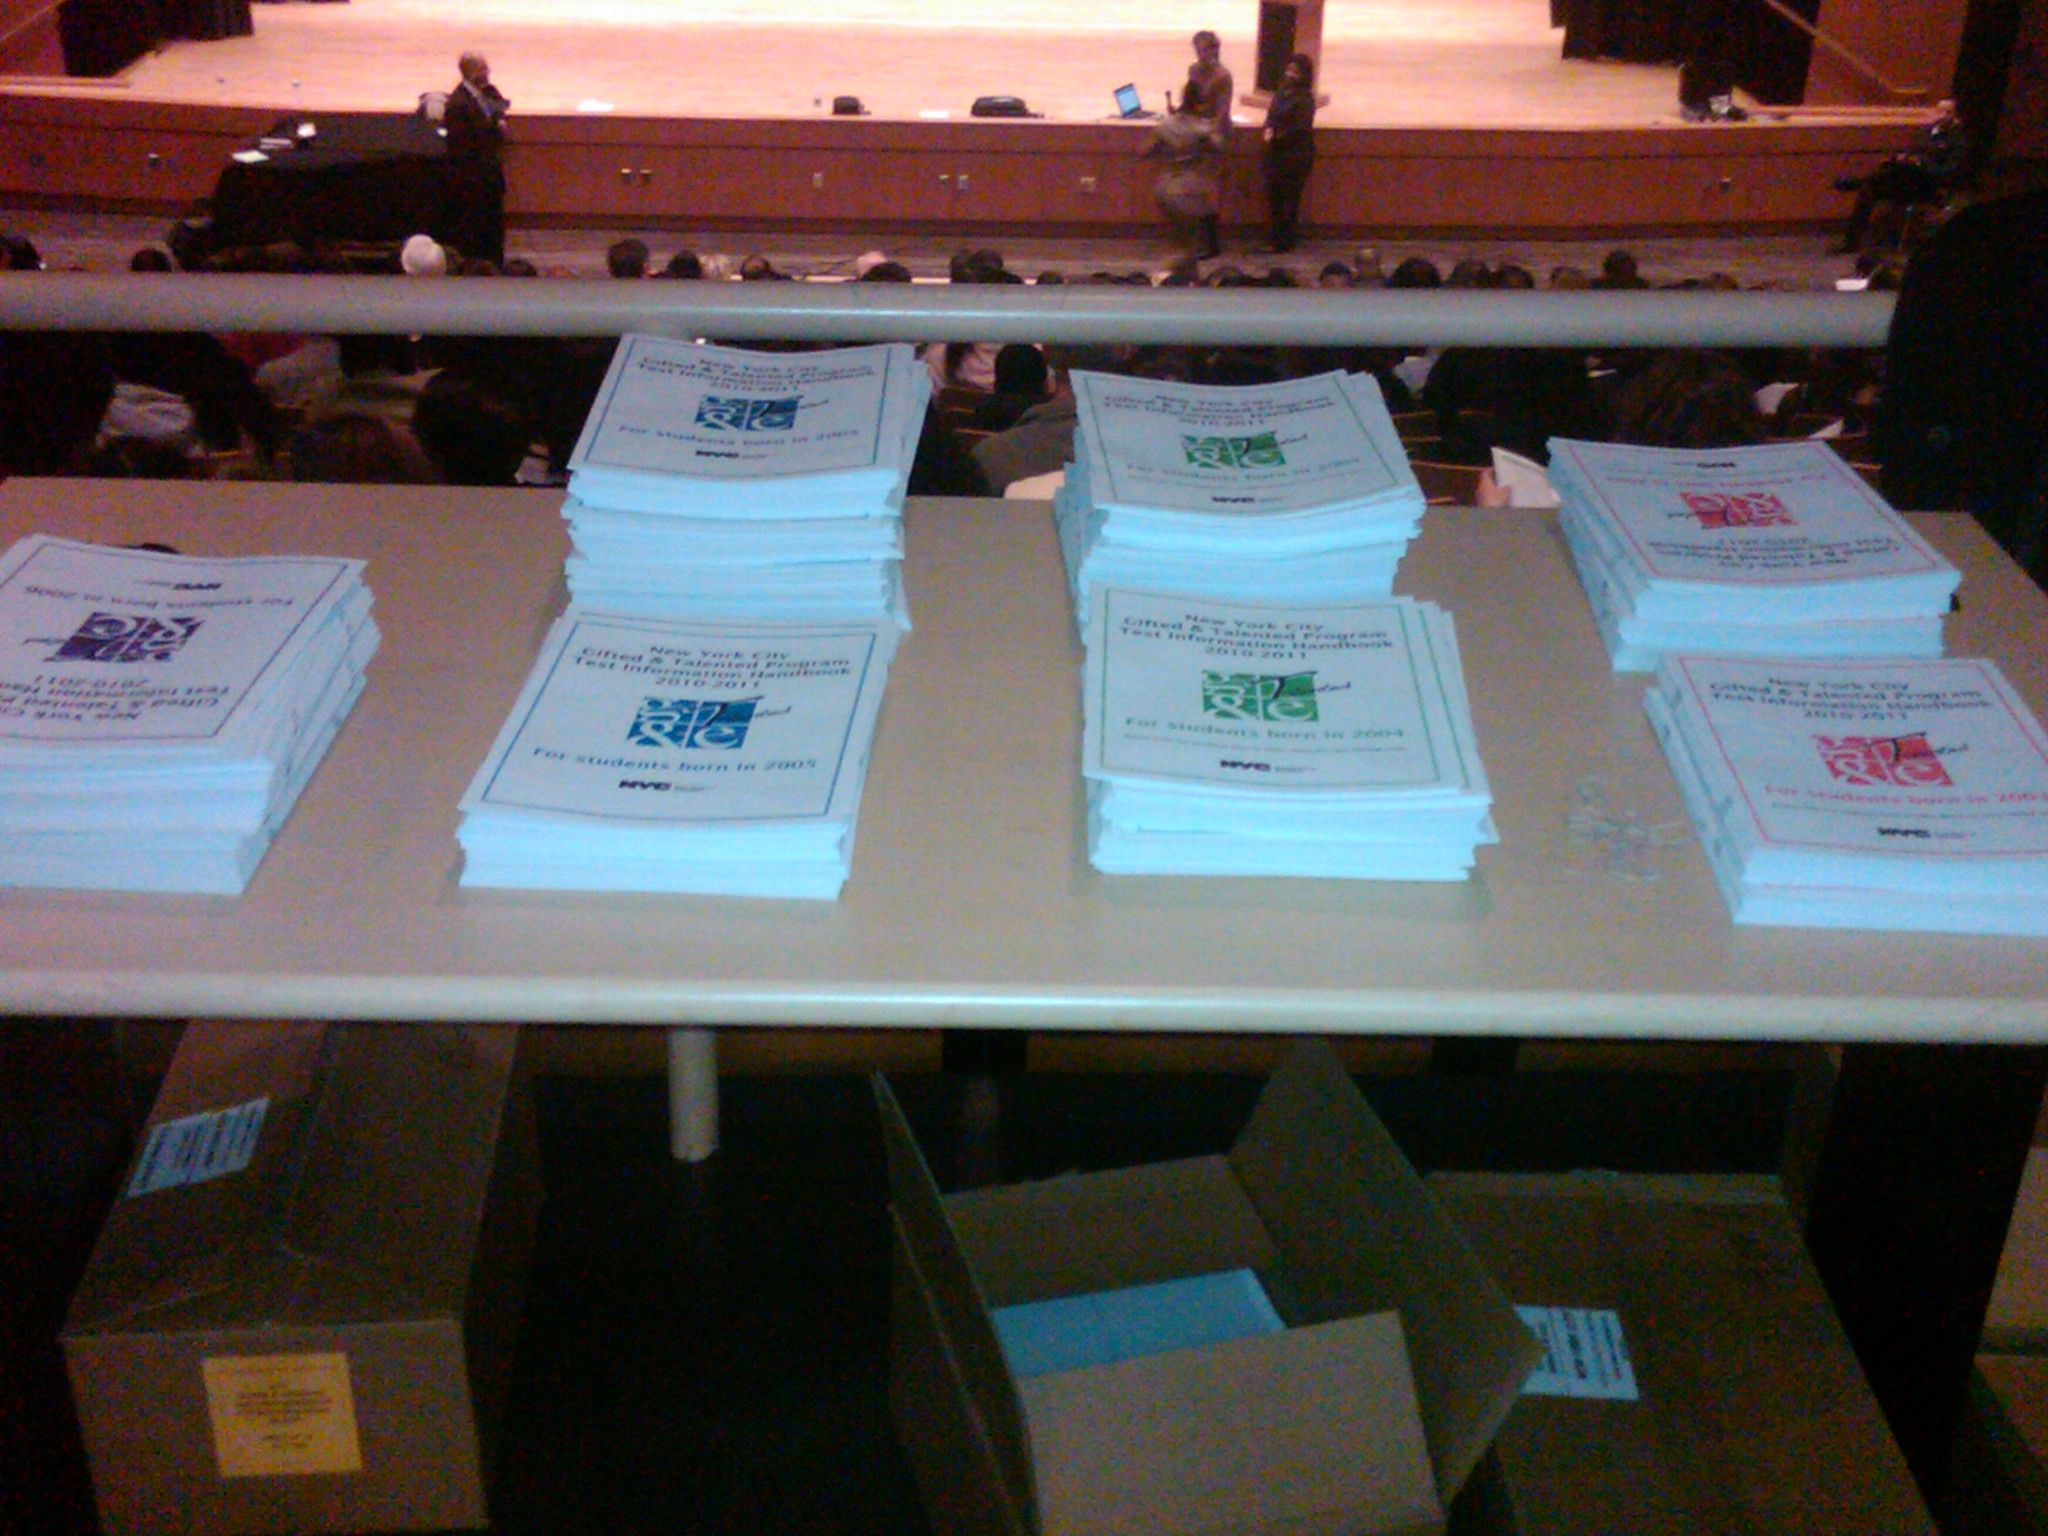 Nyc doe posts gifted and talented handbooks for olsat